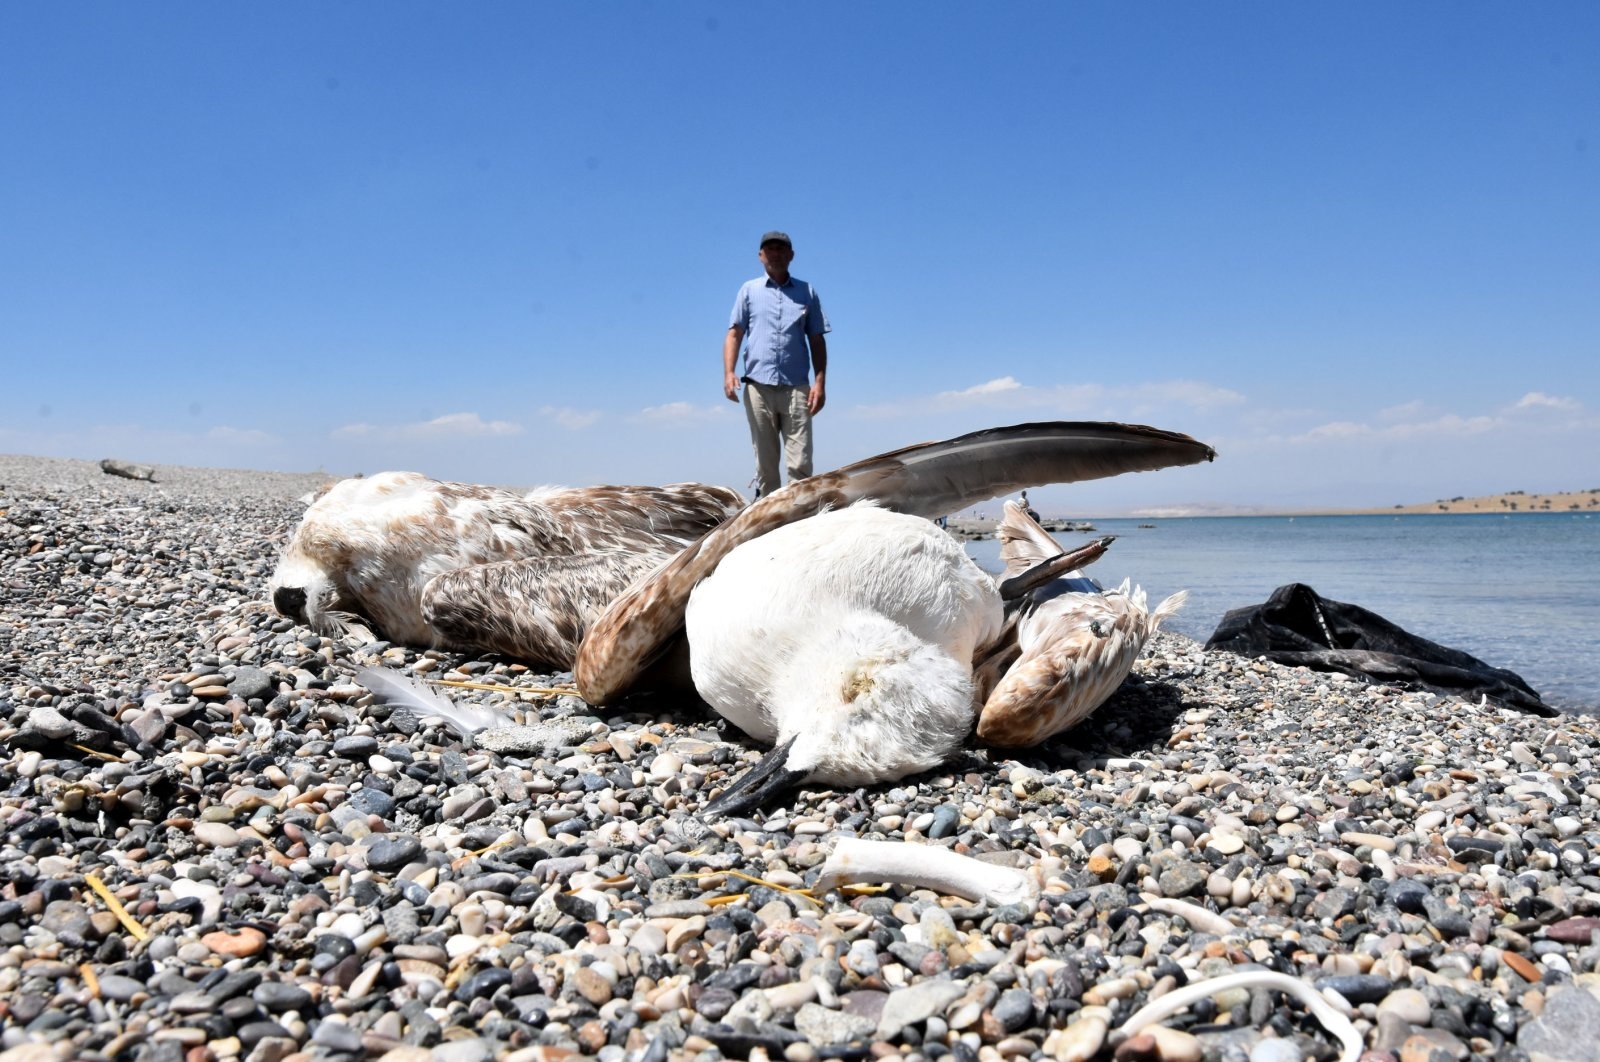 Dozens of dead seagulls have been found on the shores of Lake Van, eastern Turkey, in recent weeks. (DHA Photo)